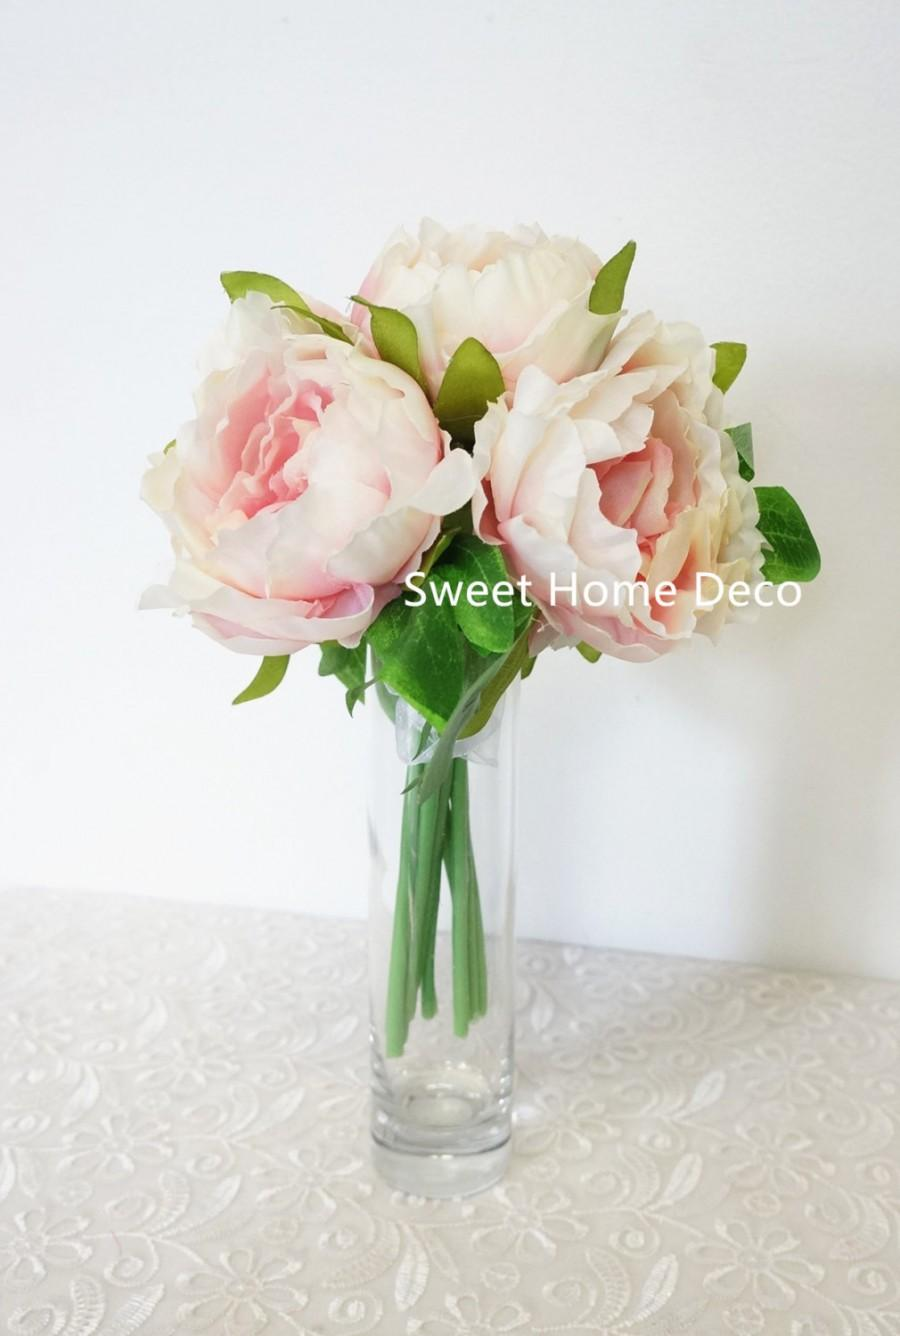 Mariage - JennysFlowerShop 9'' Soft Silk Peony Artificial Flower Bouquet (10 stems/5 Flower Head) for Wedding/ Home Decorations Pink